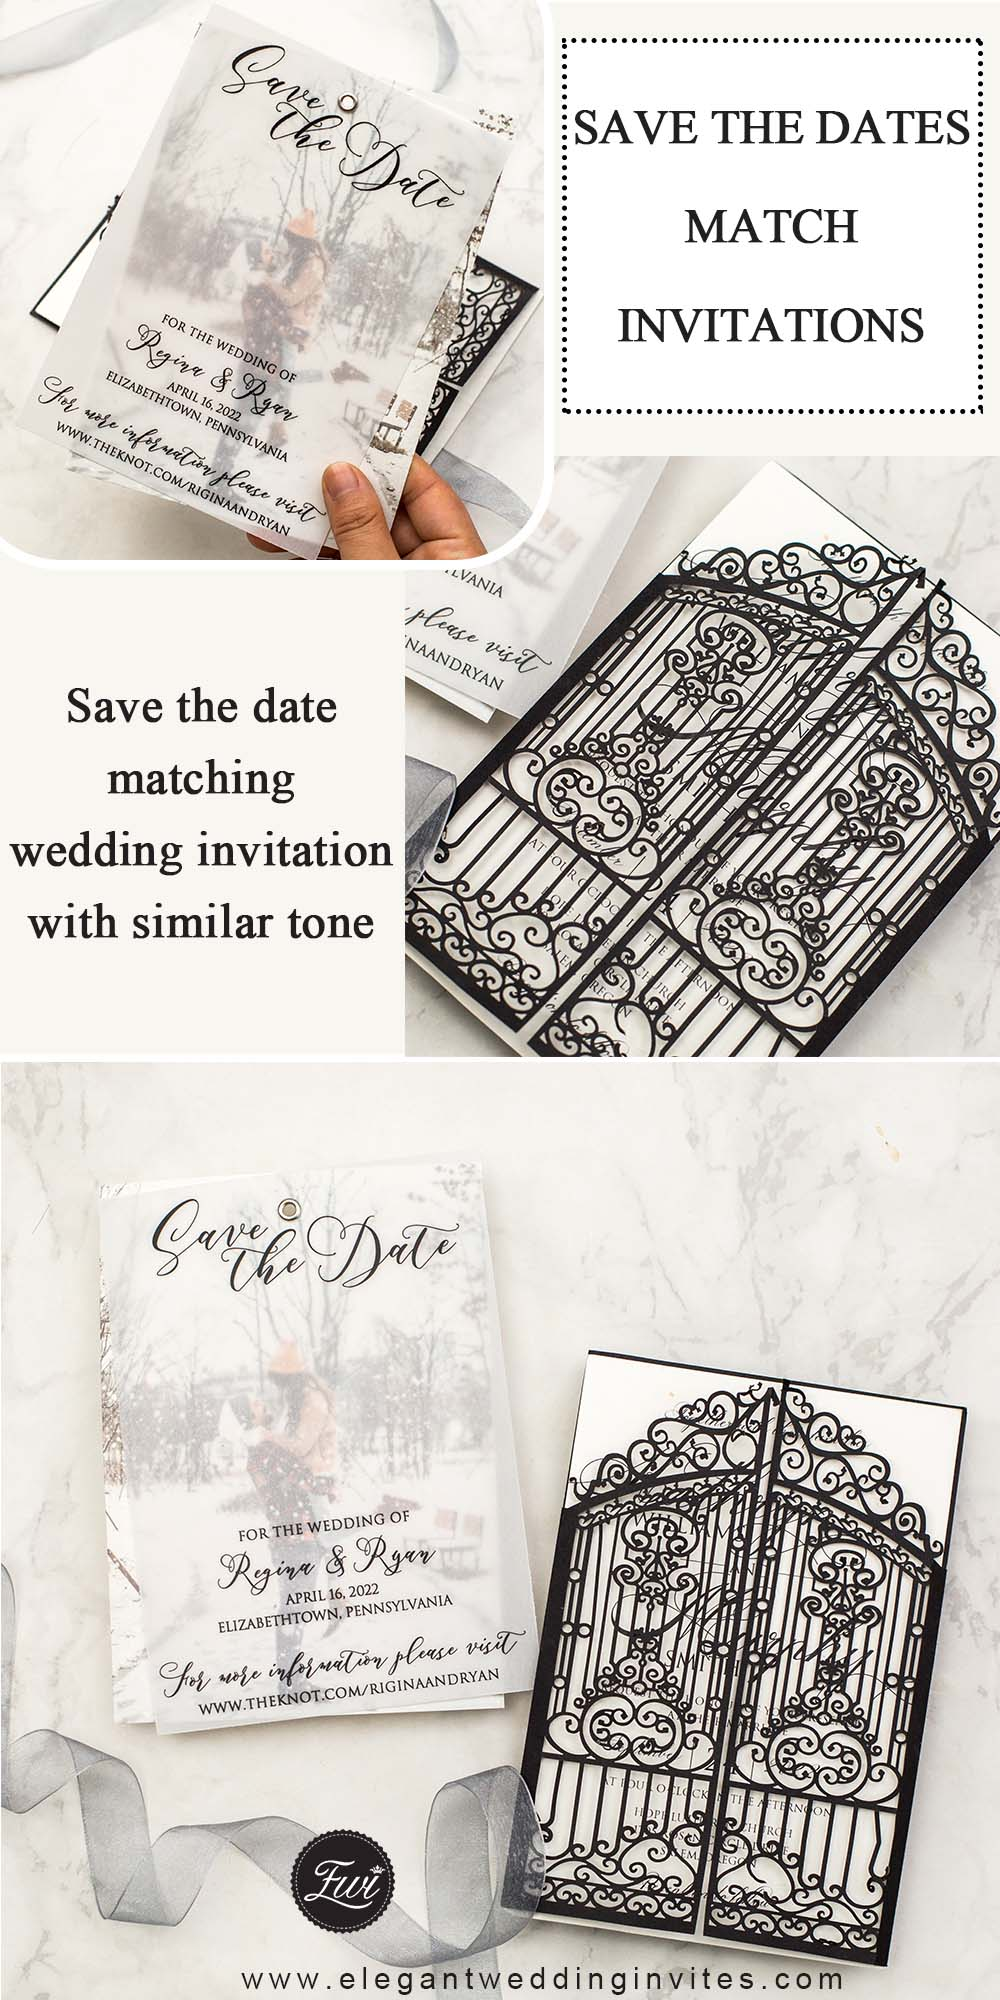 Save the Dates Match Invitations with similar black color and tone